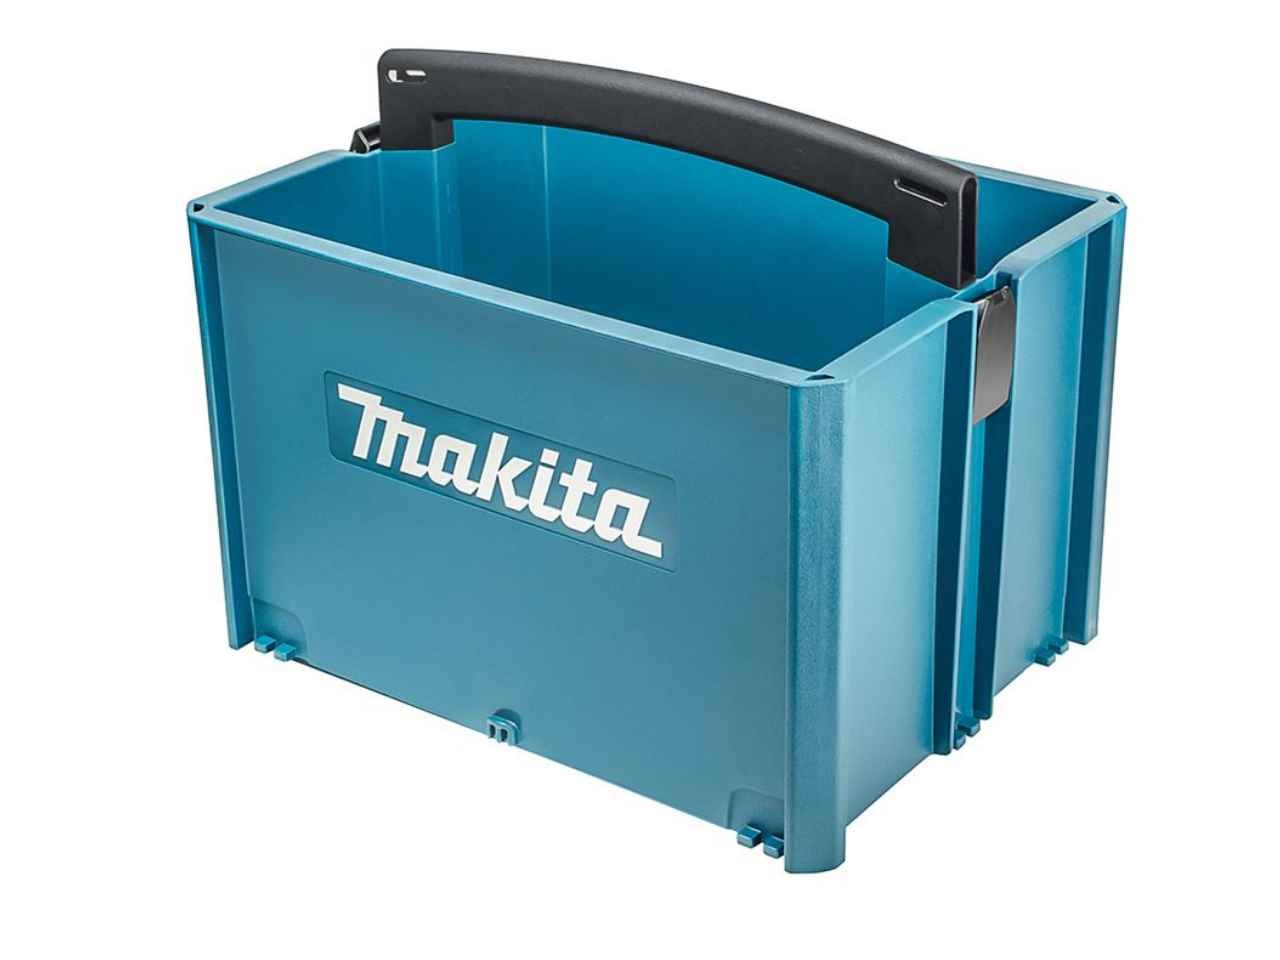 MAKITA STACKING CASE TOTE BOX - P-83842 - 395MM (L) X 295MM (W) X 335MM (H)